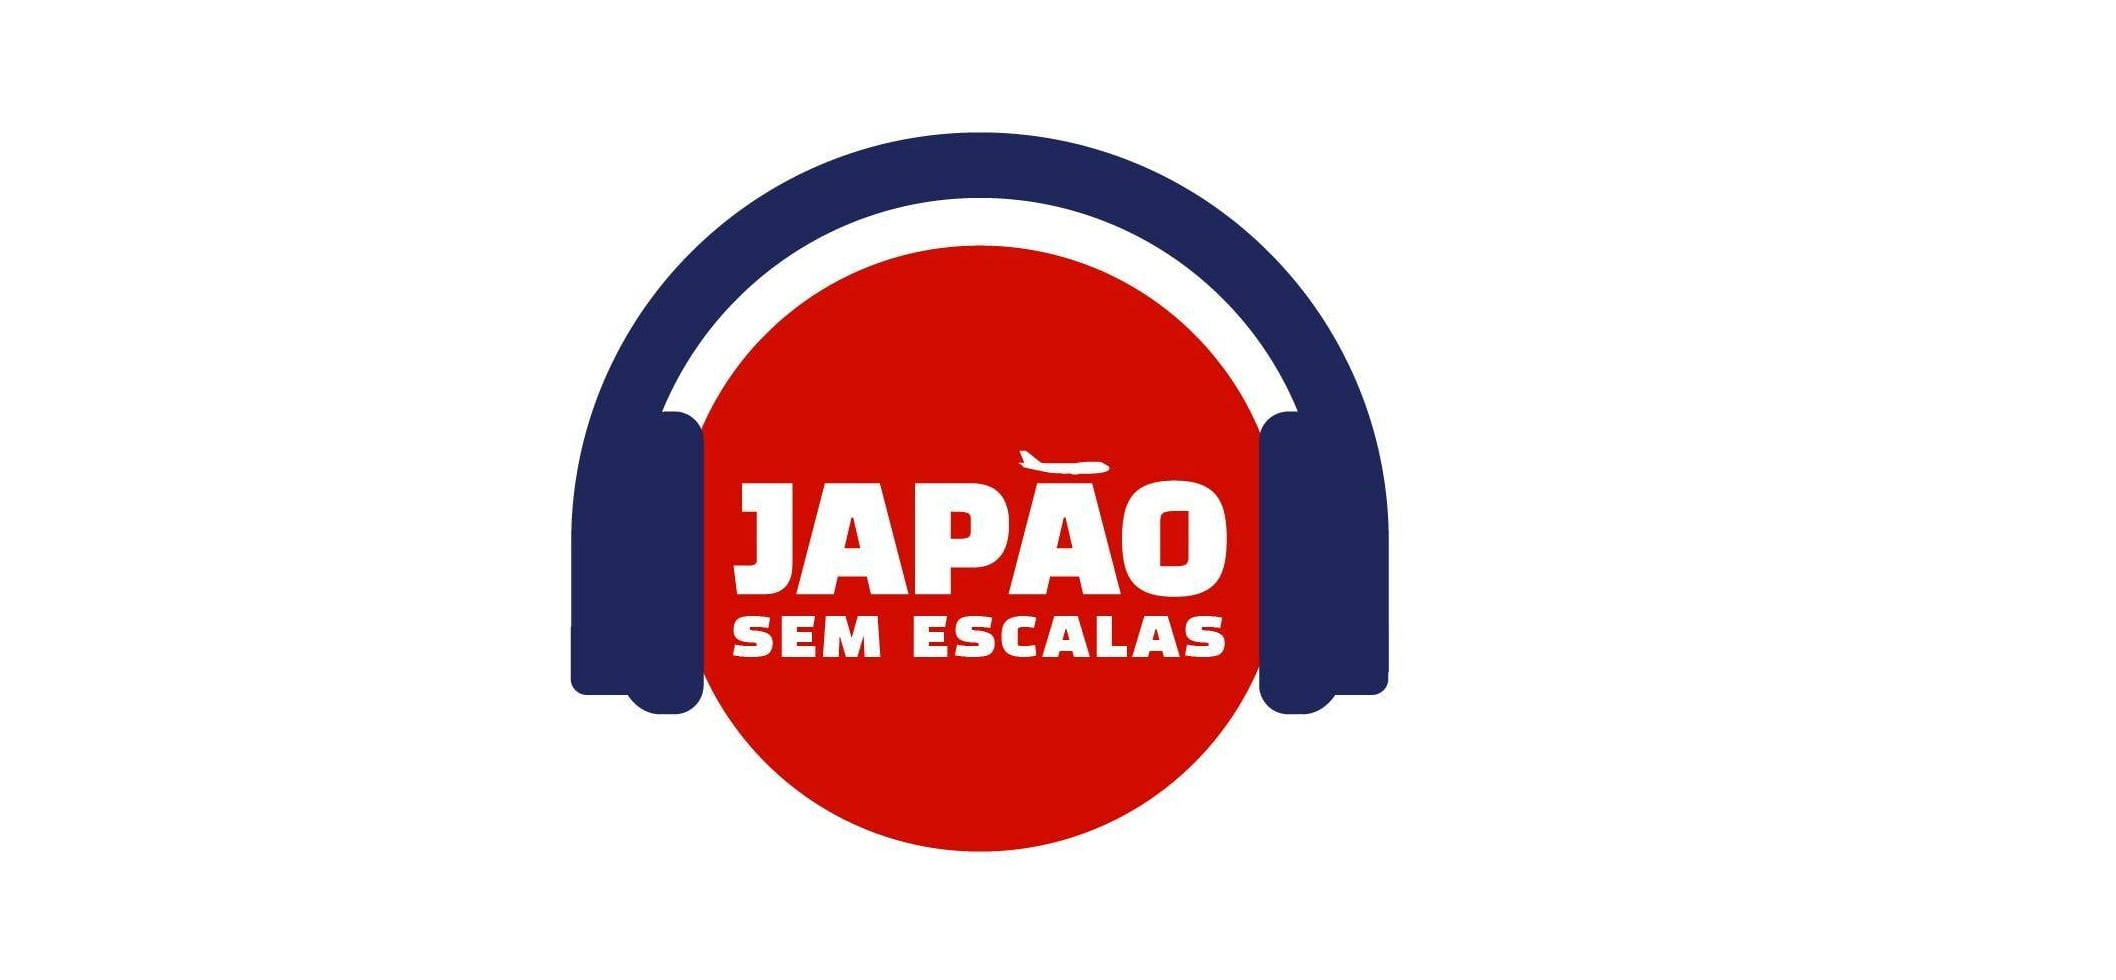 podcast japão sem escalas logo destacada